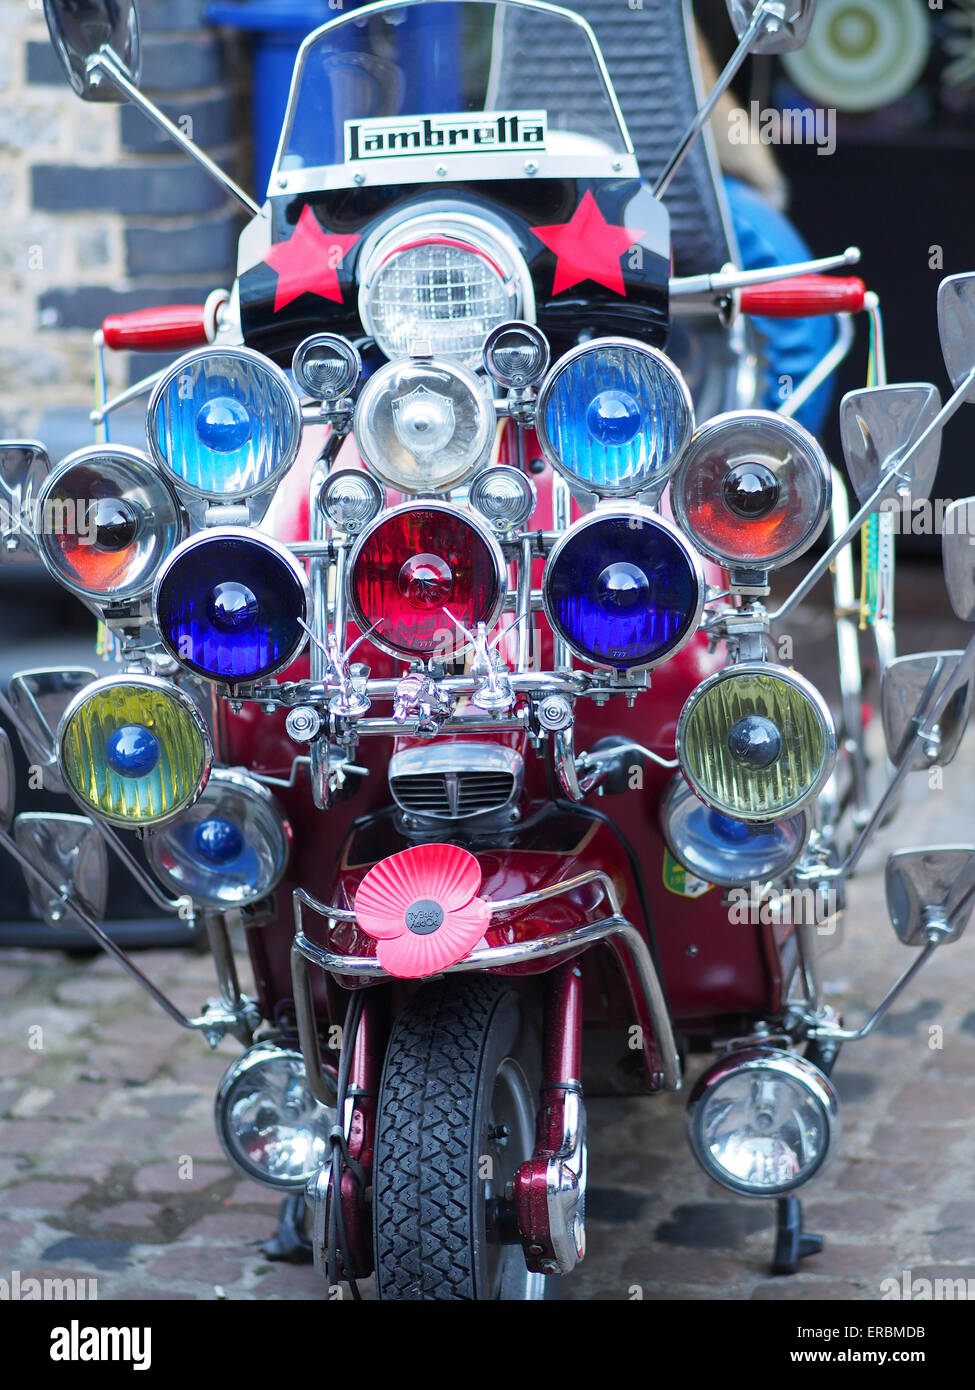 Close-up front view of a Lambretta scooter with lots of colourful headlights - Stock Image